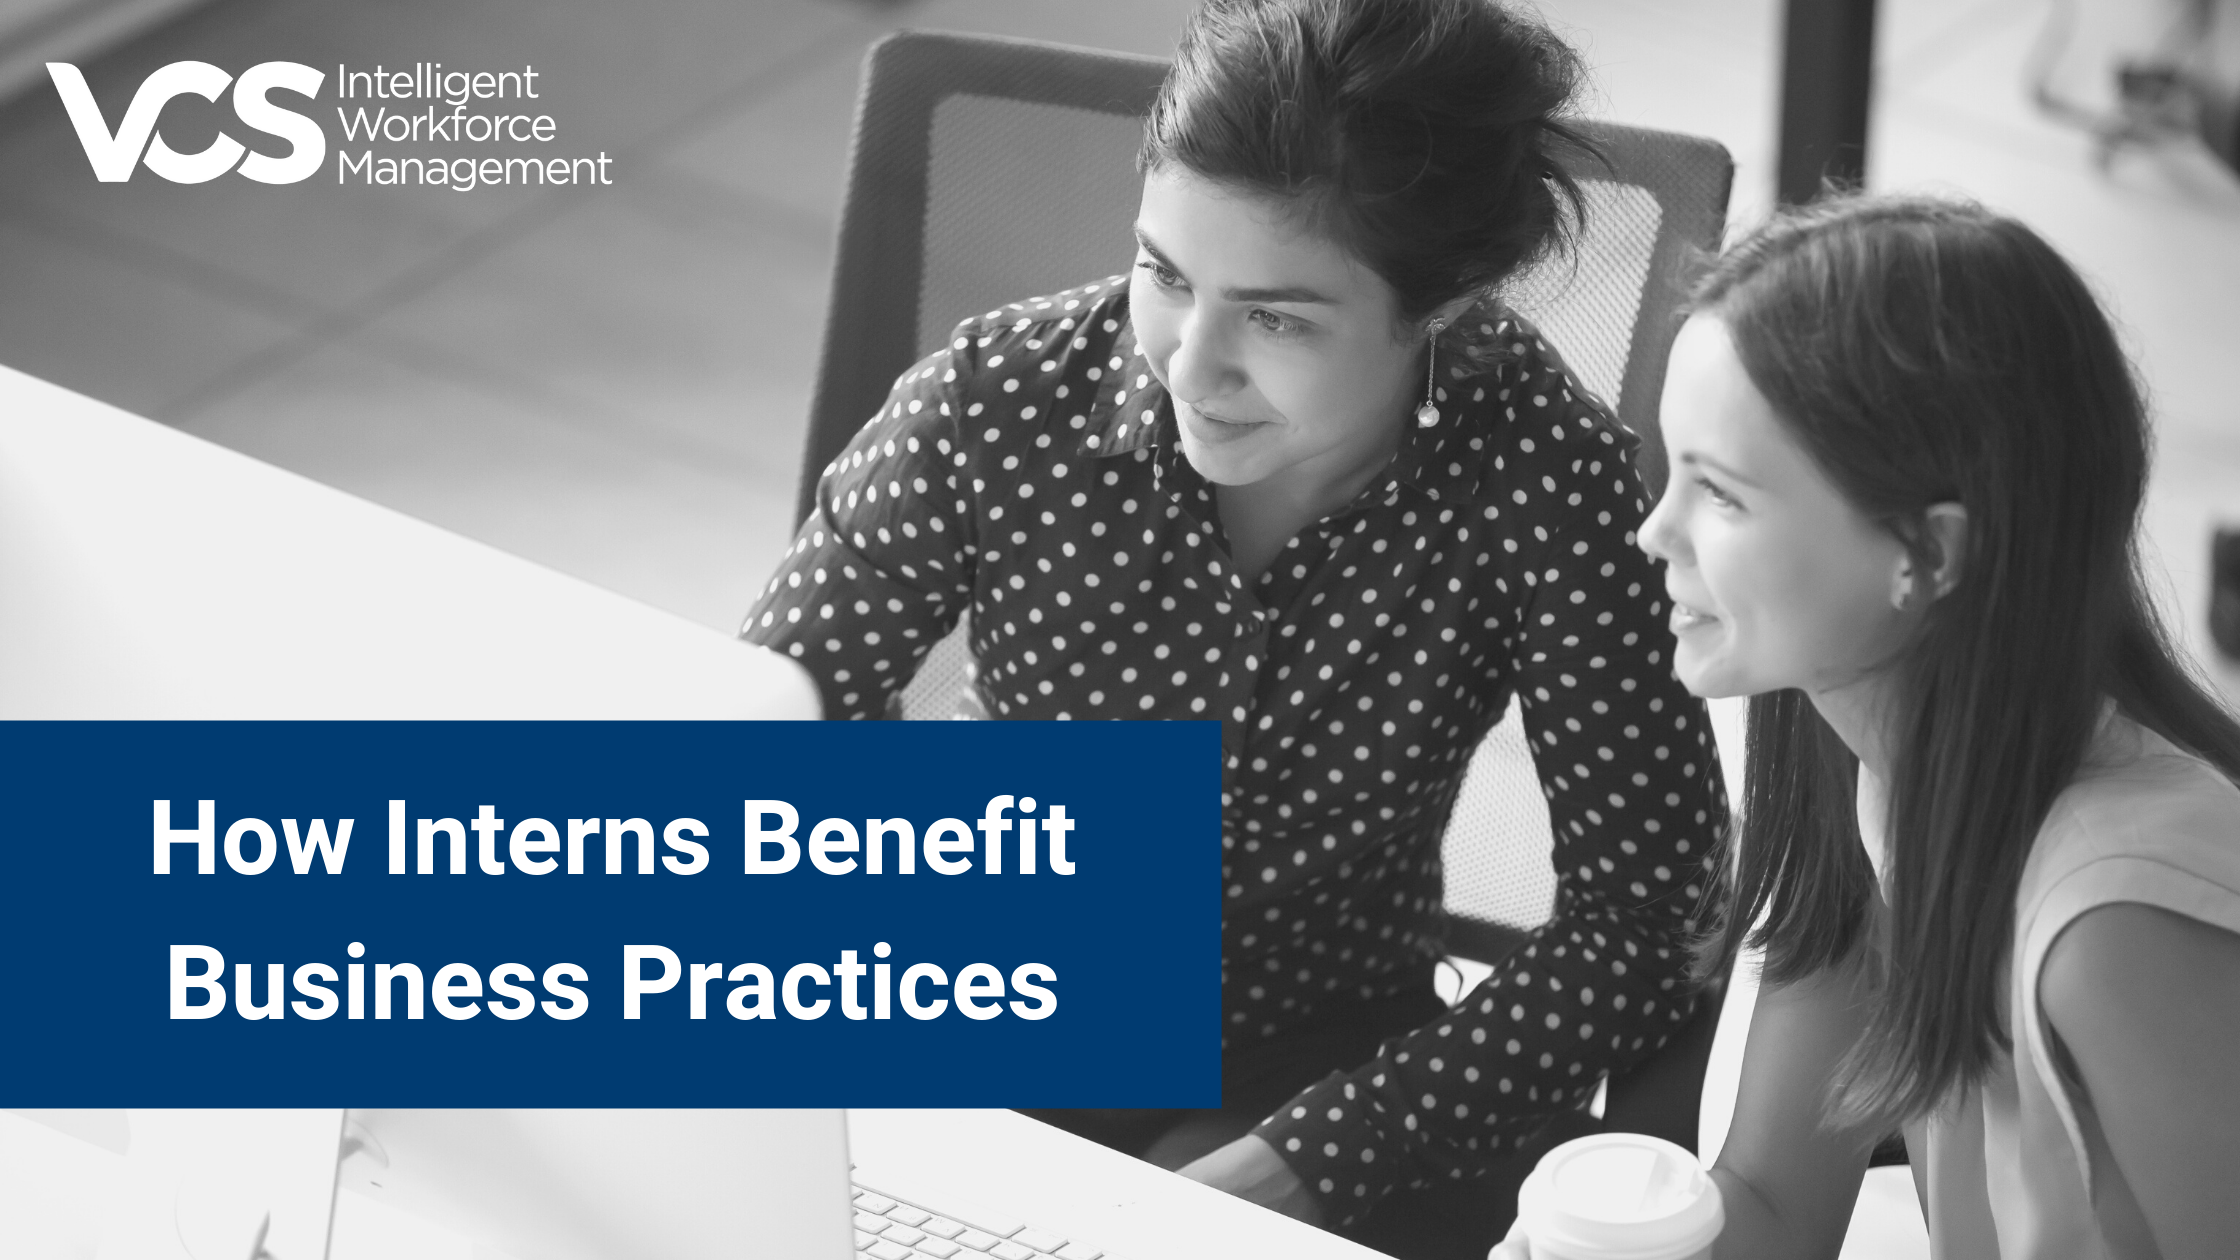 How Interns Benefit Business Practices